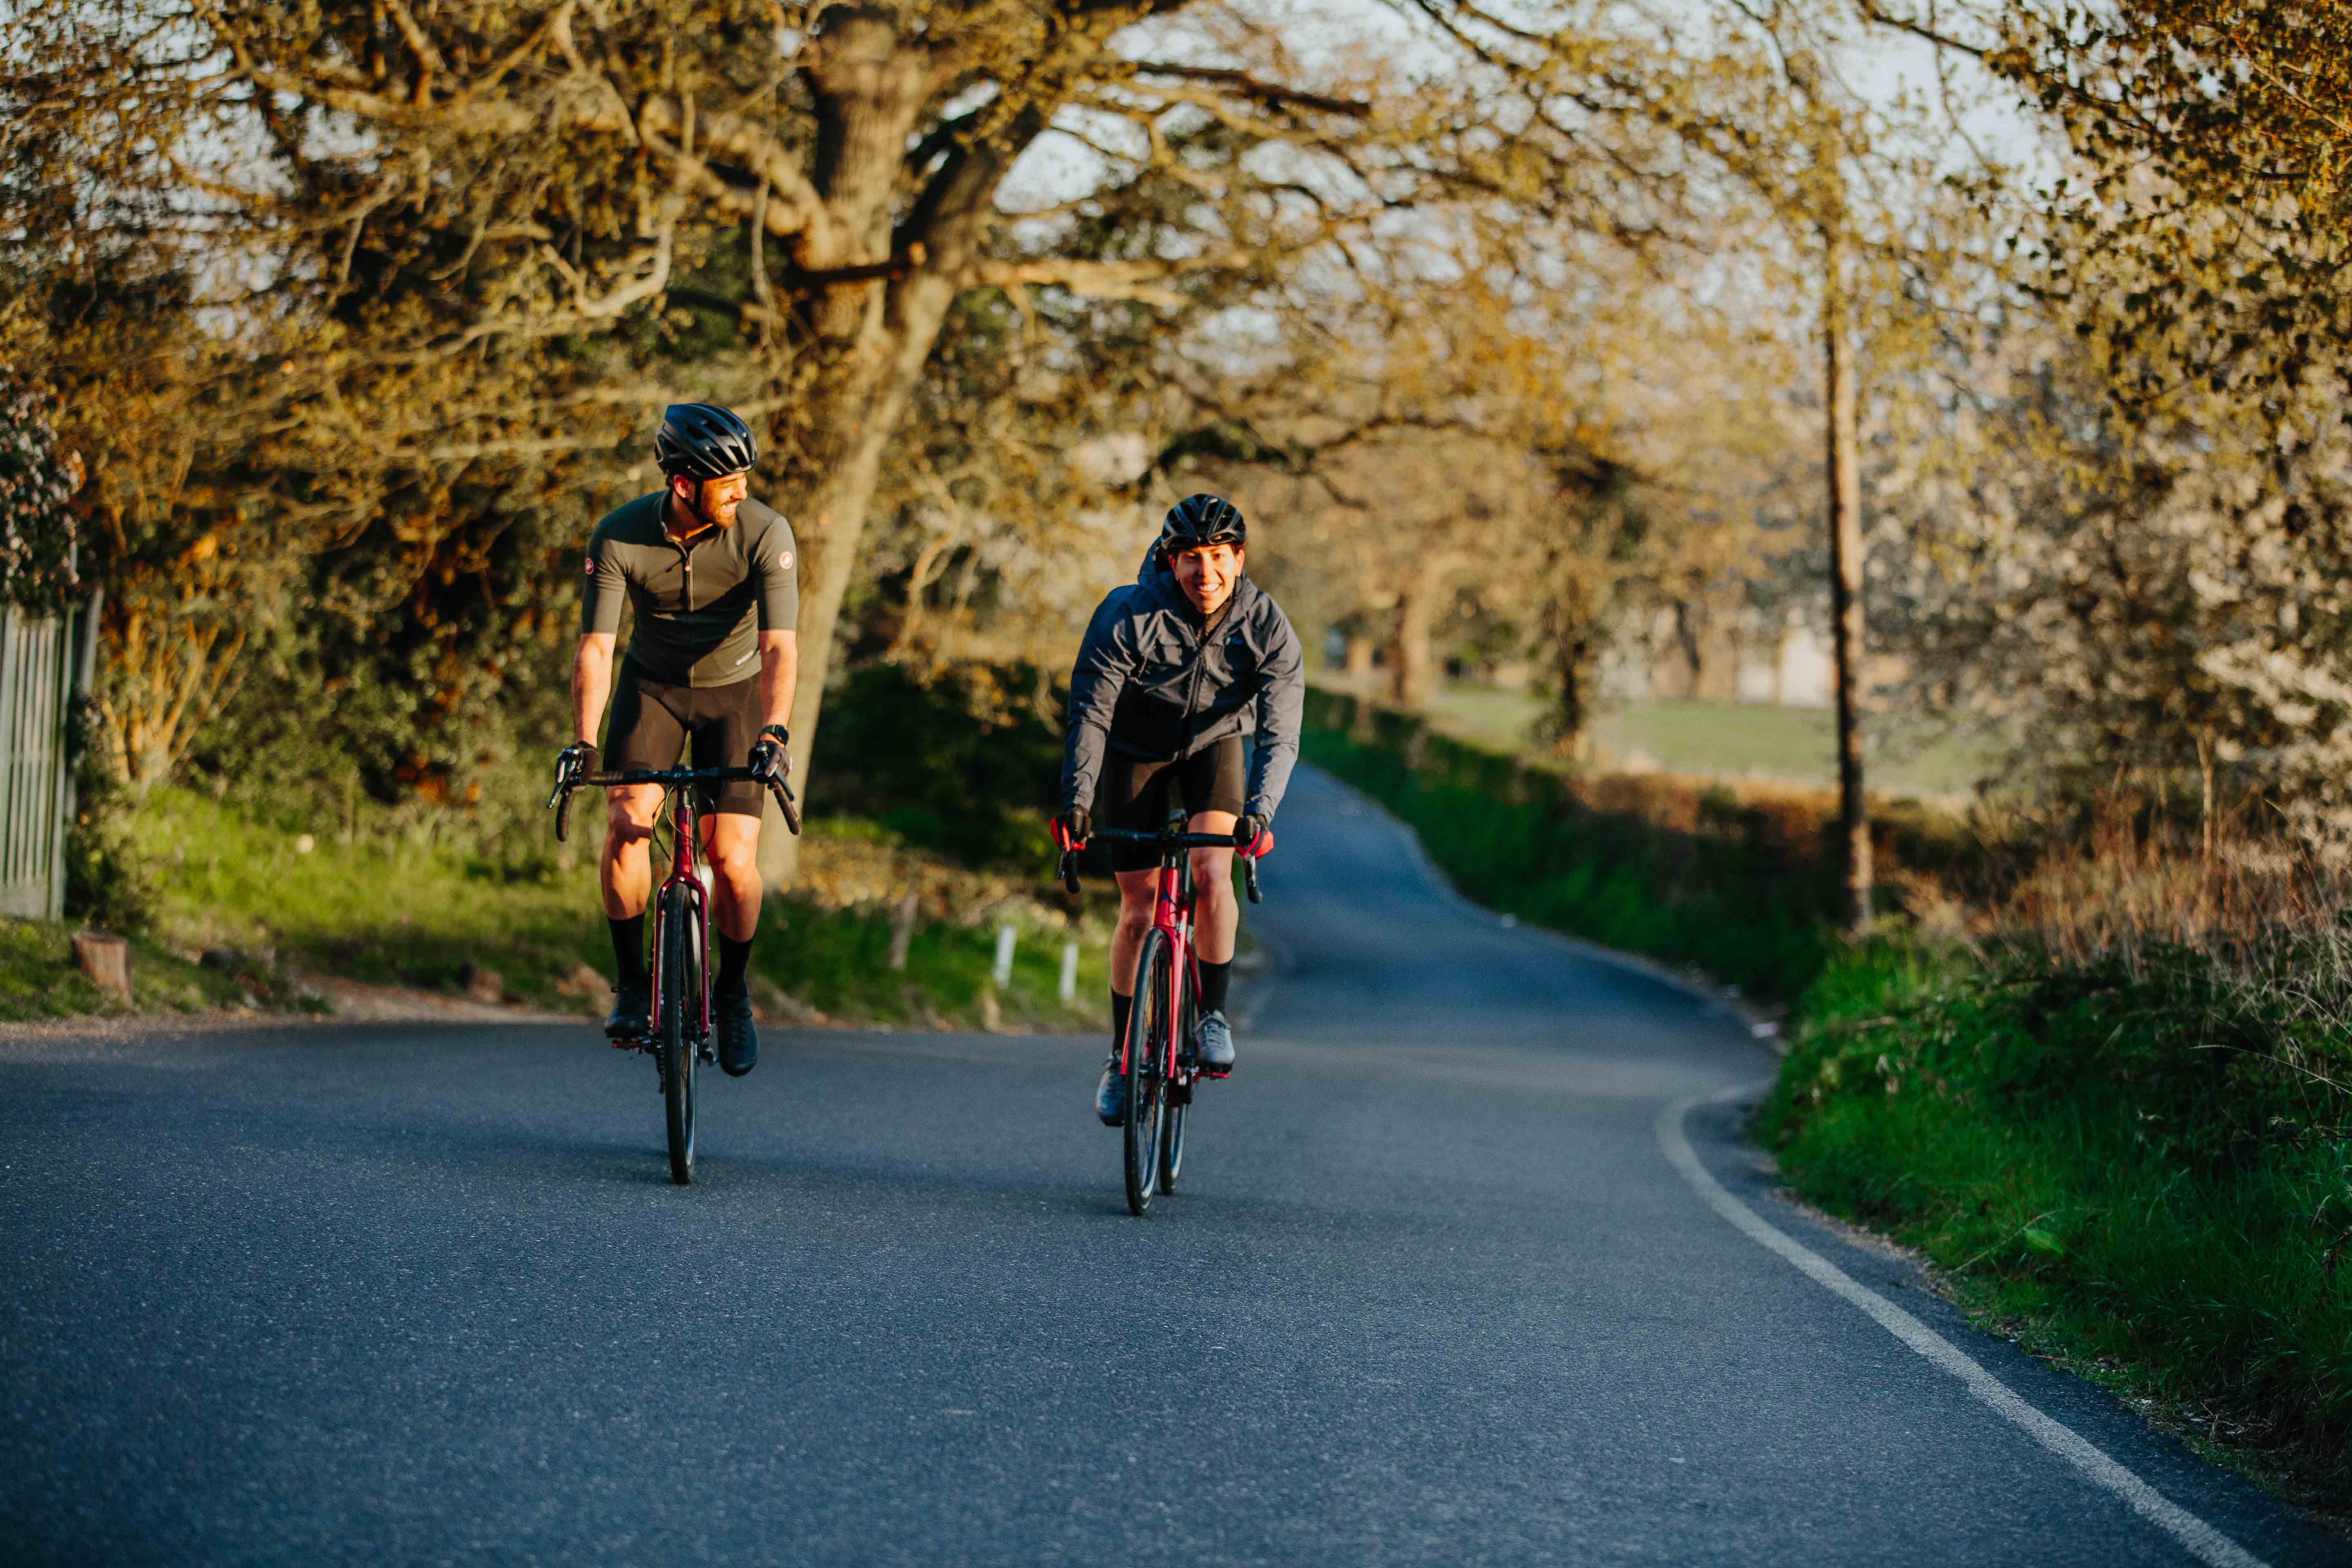 Plan your first road bike ride